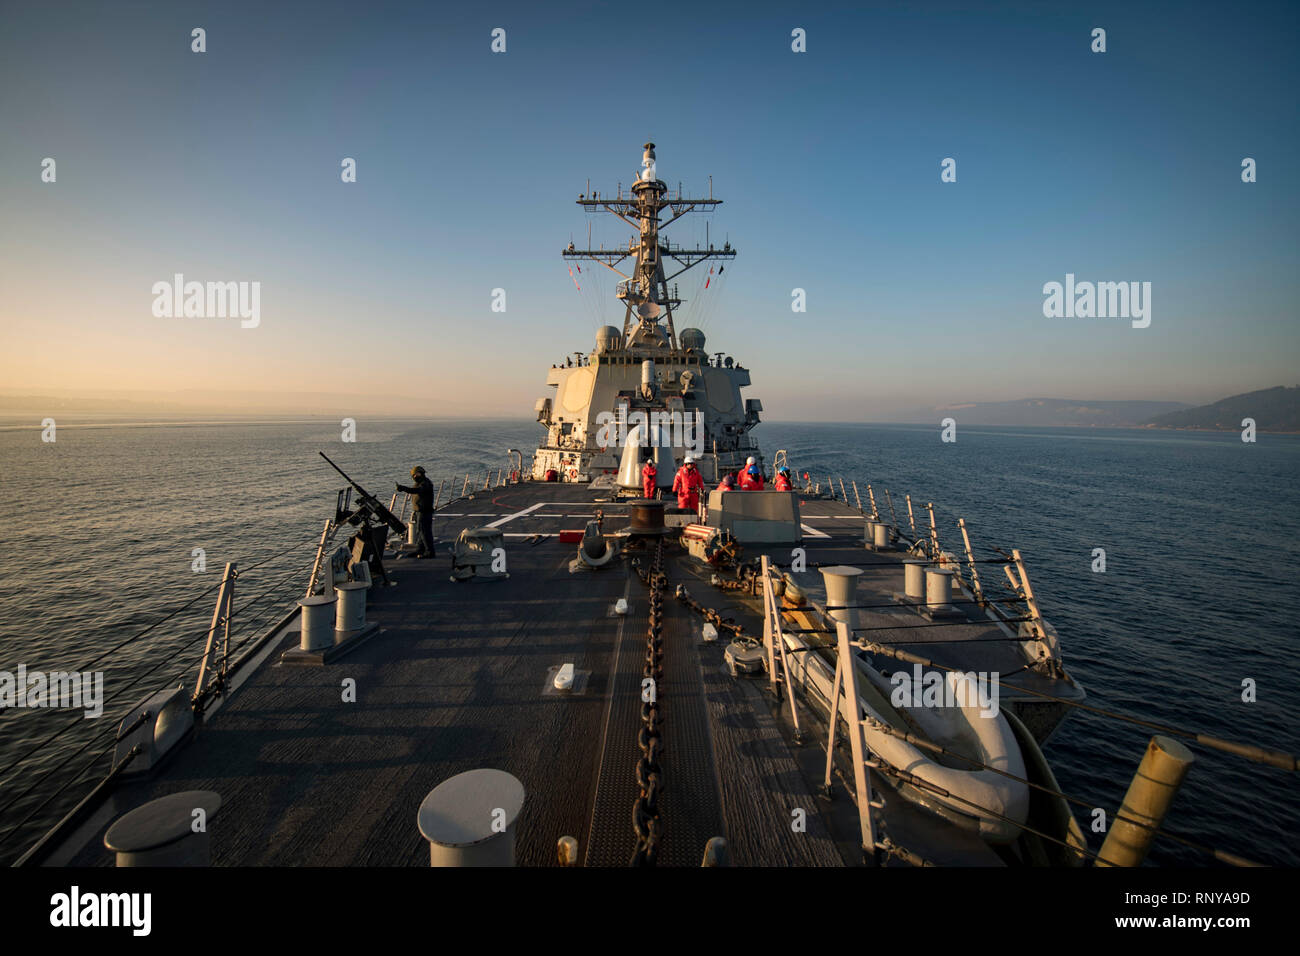 190219-N-JI086-032 DARDANELLES STRAIT (Feb. 19, 2019) The Arleigh Burke-class guided-missile destroyer USS Donald Cook (DDG 75) transits the Dardanelles Strait, Feb. 19, 2019. Donald Cook, forward-deployed to Rota, Spain, is on its eighth patrol in the U.S. 6th Fleet area of operations in support of U.S. national security interests in Europe and Africa. (U.S. Navy photo by Mass Communication Specialist 2nd Class Ford Williams/Released) - Stock Image